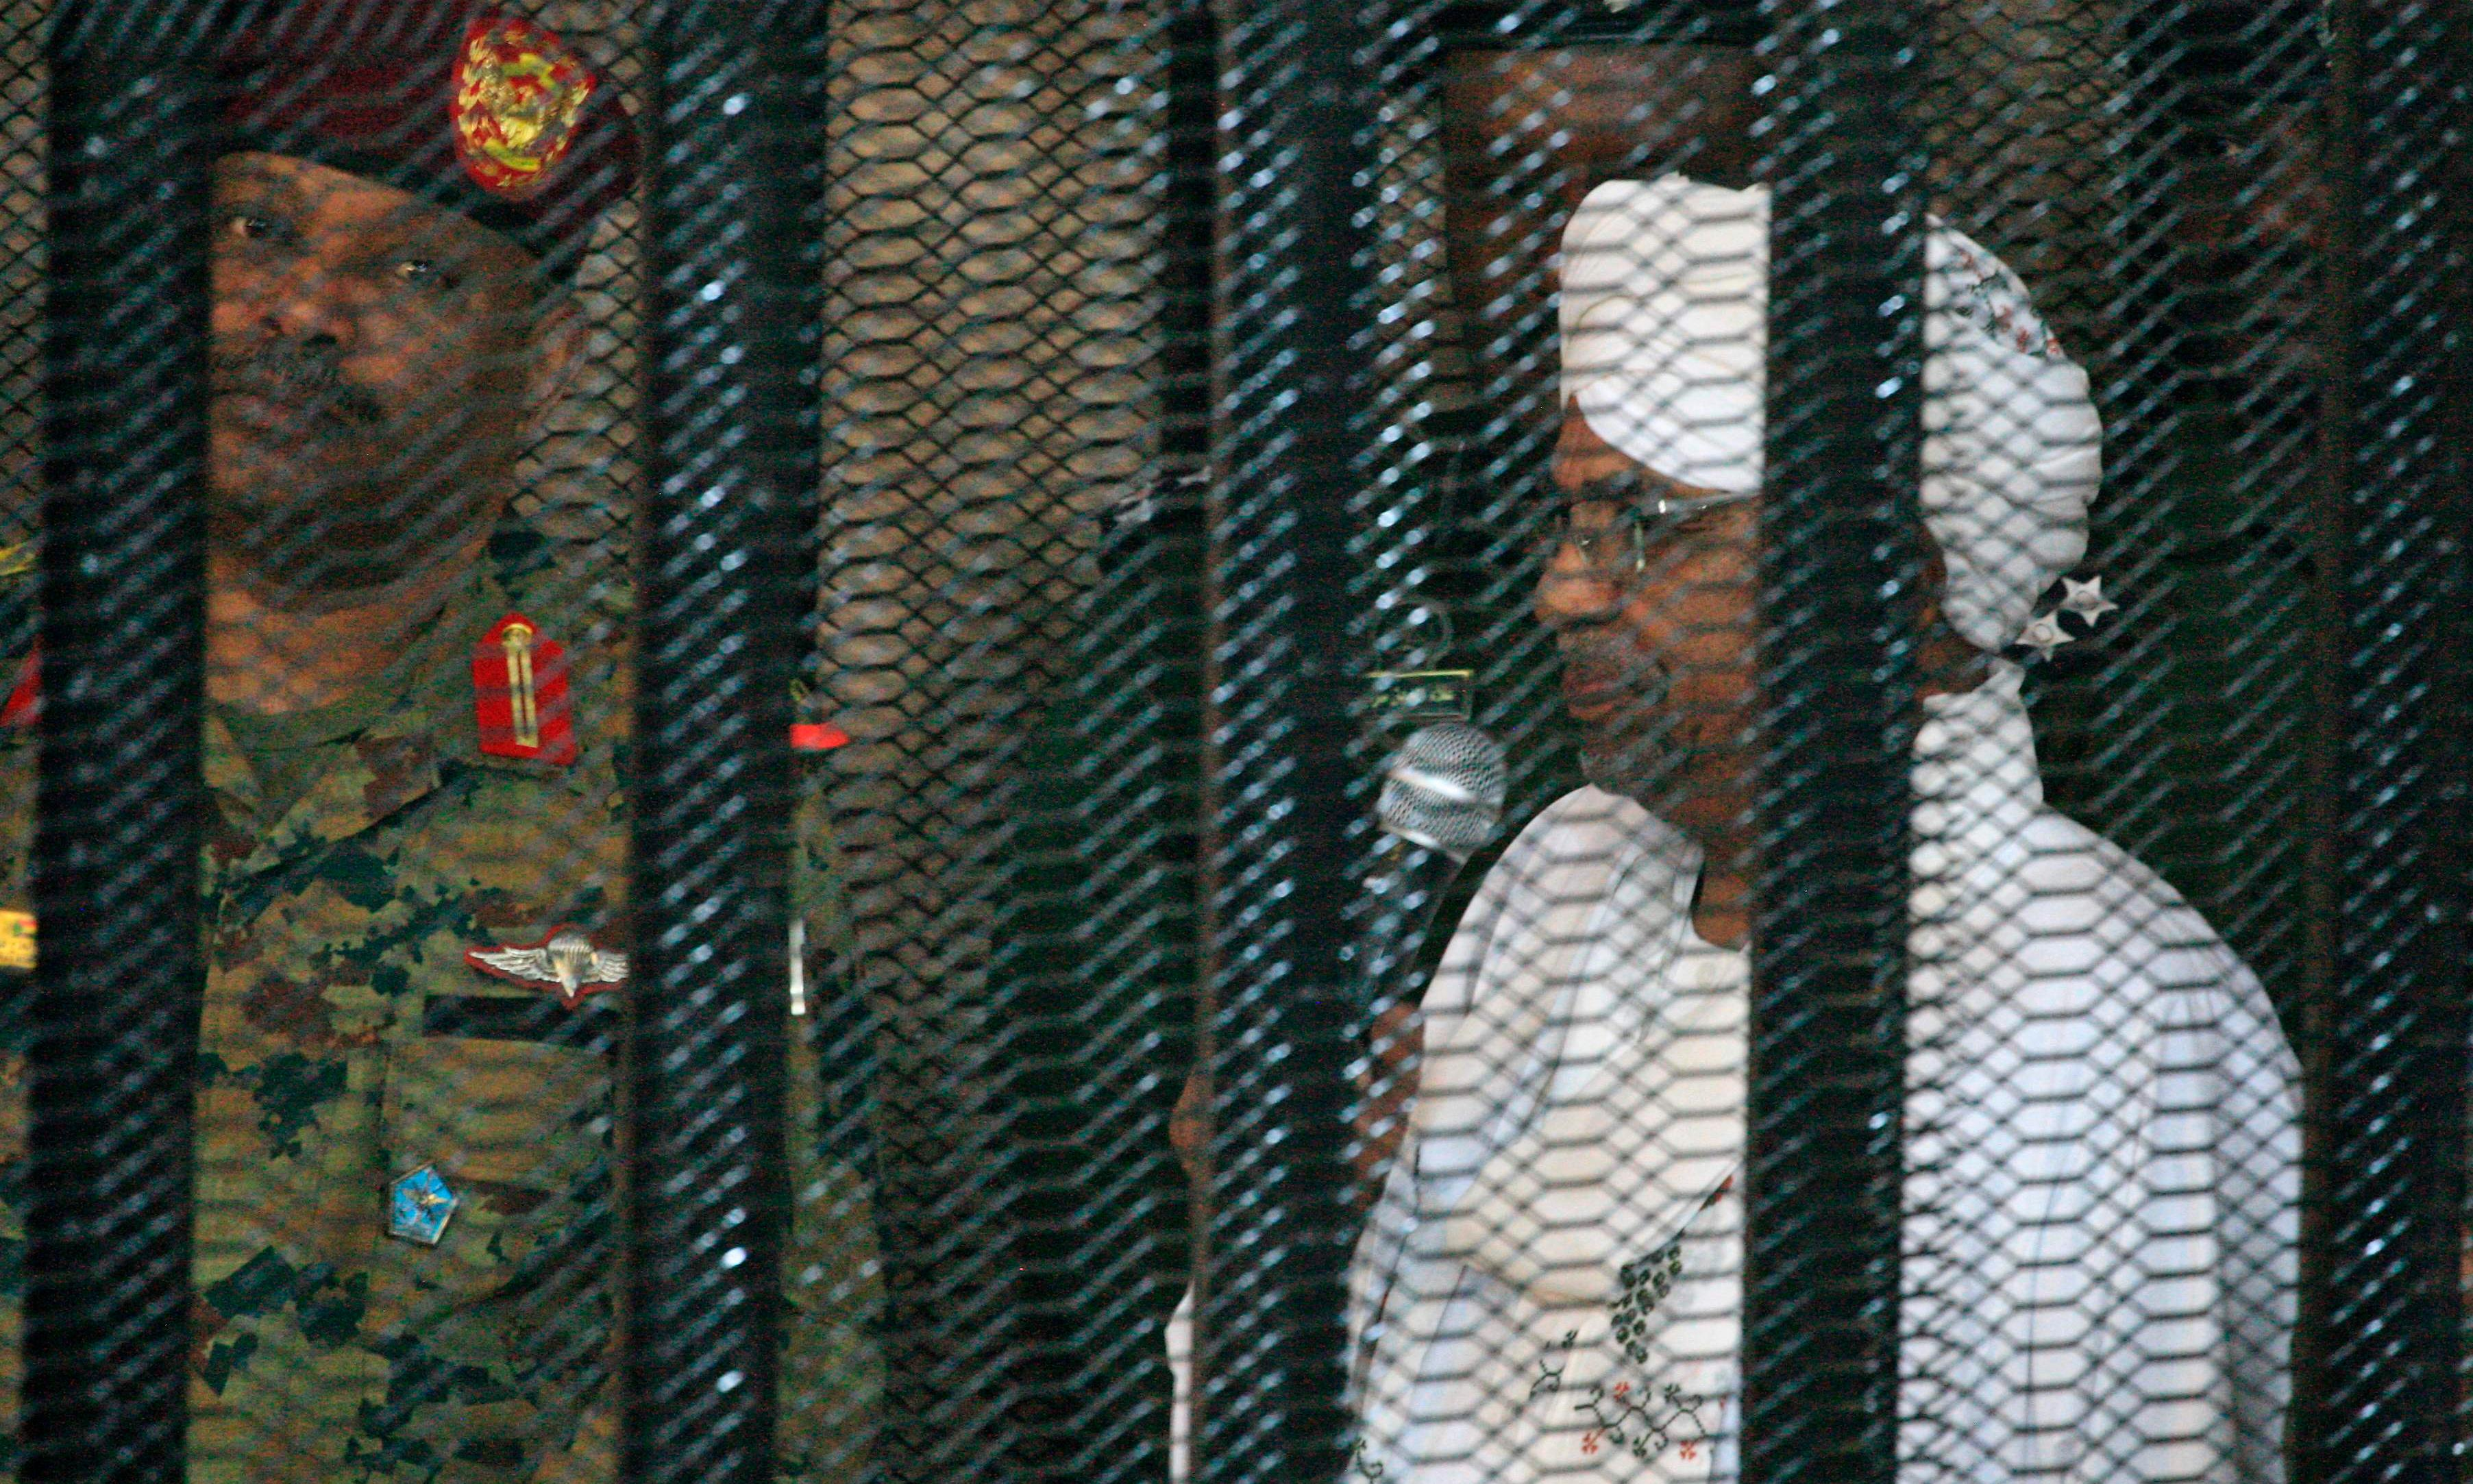 Ex-Sudan leader said he received millions from Saudis, trial told